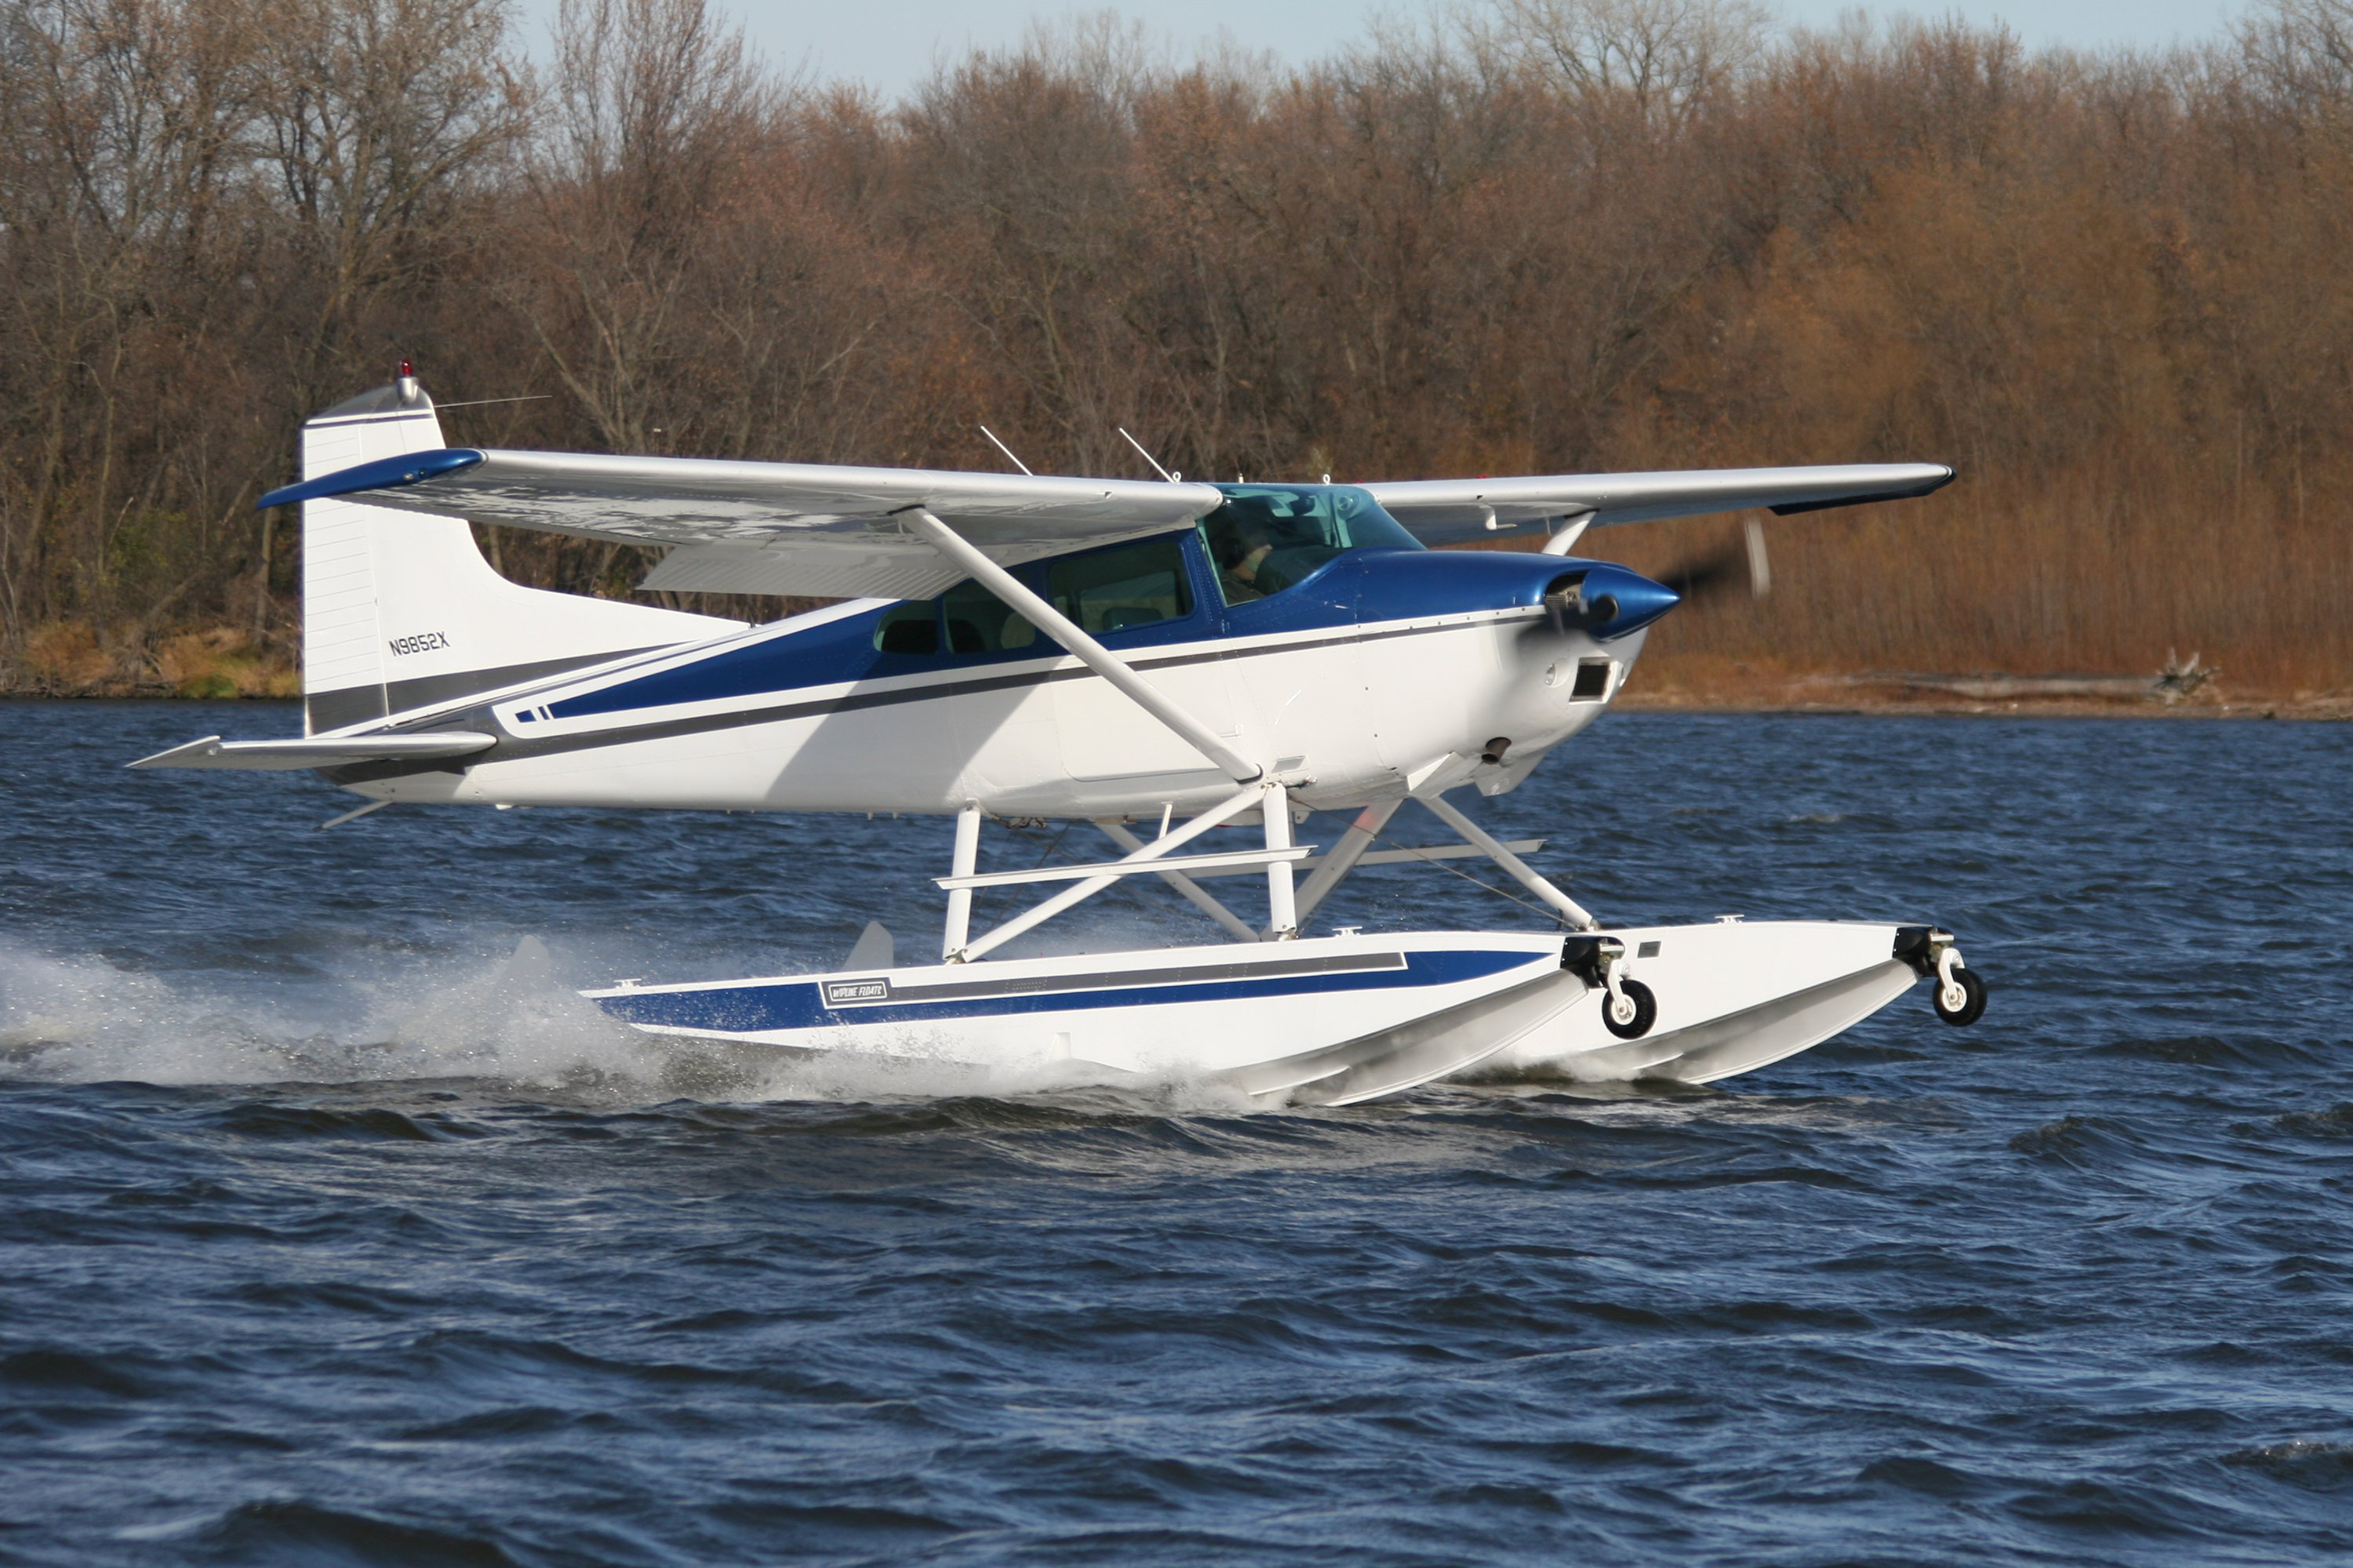 Cessna 185 on Wipline 3000 Floats